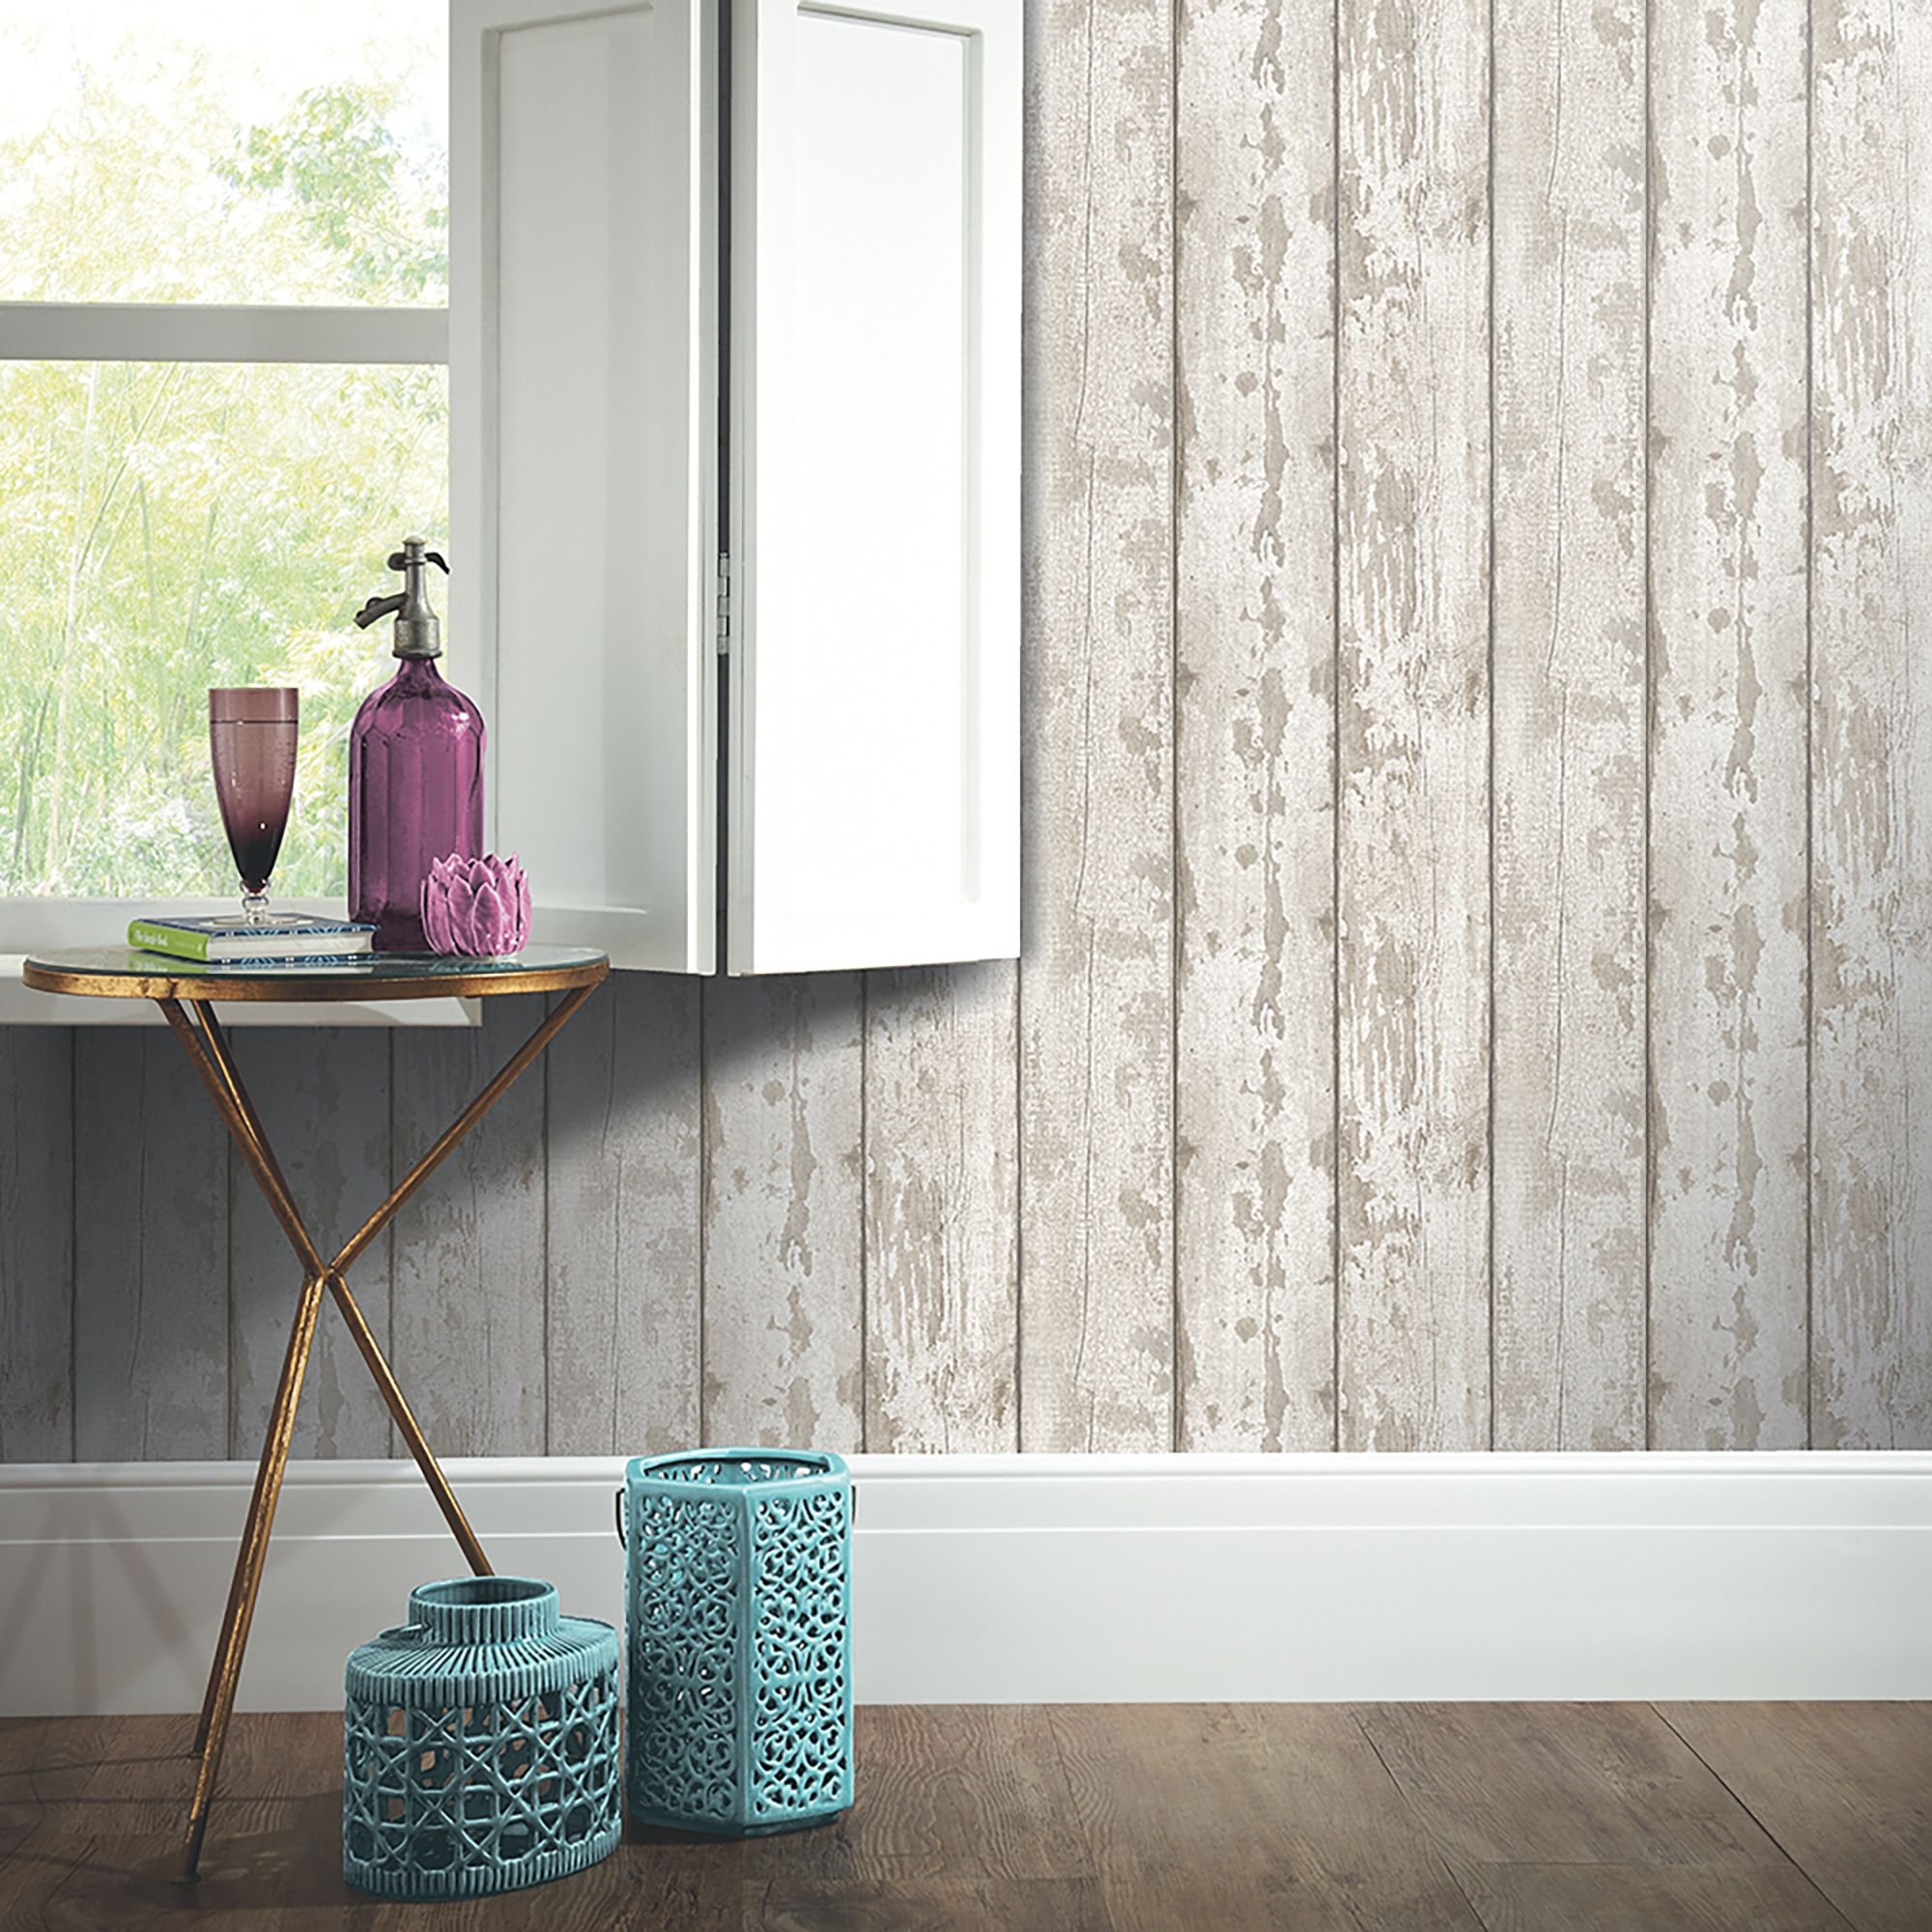 Arthouse White Washed Wood Paper Strippable Wallpaper Covers 57 Sq Ft 694700 The Home Depot Wood Wallpaper Whitewash Wood Wood Effect Wallpaper